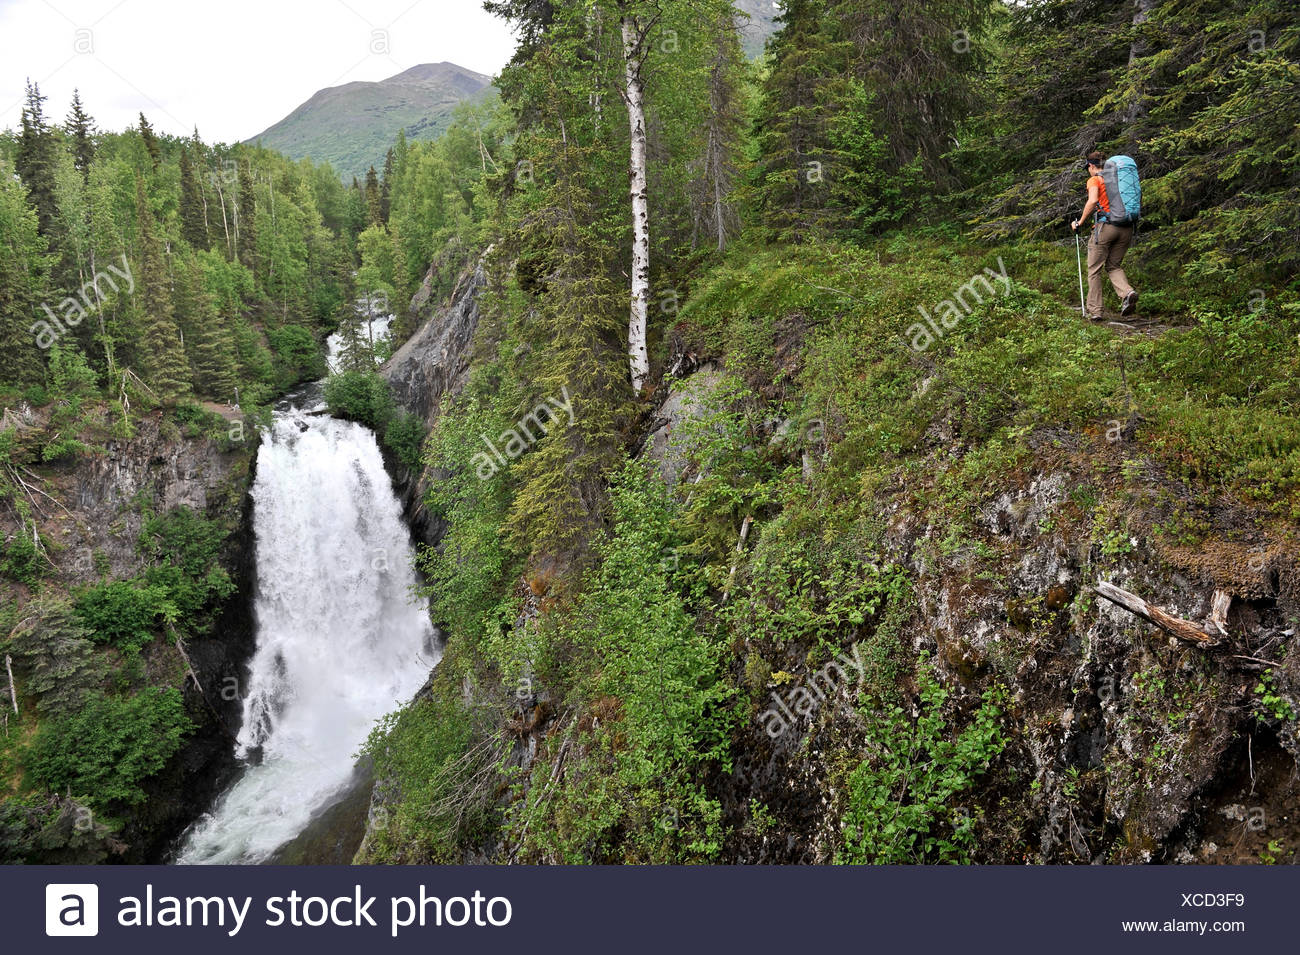 Woman hikes near Juneau Falls on the Resurrection Pass Trail in the Chugach National Forest, Southcentral Alaska, Summer - Stock Image